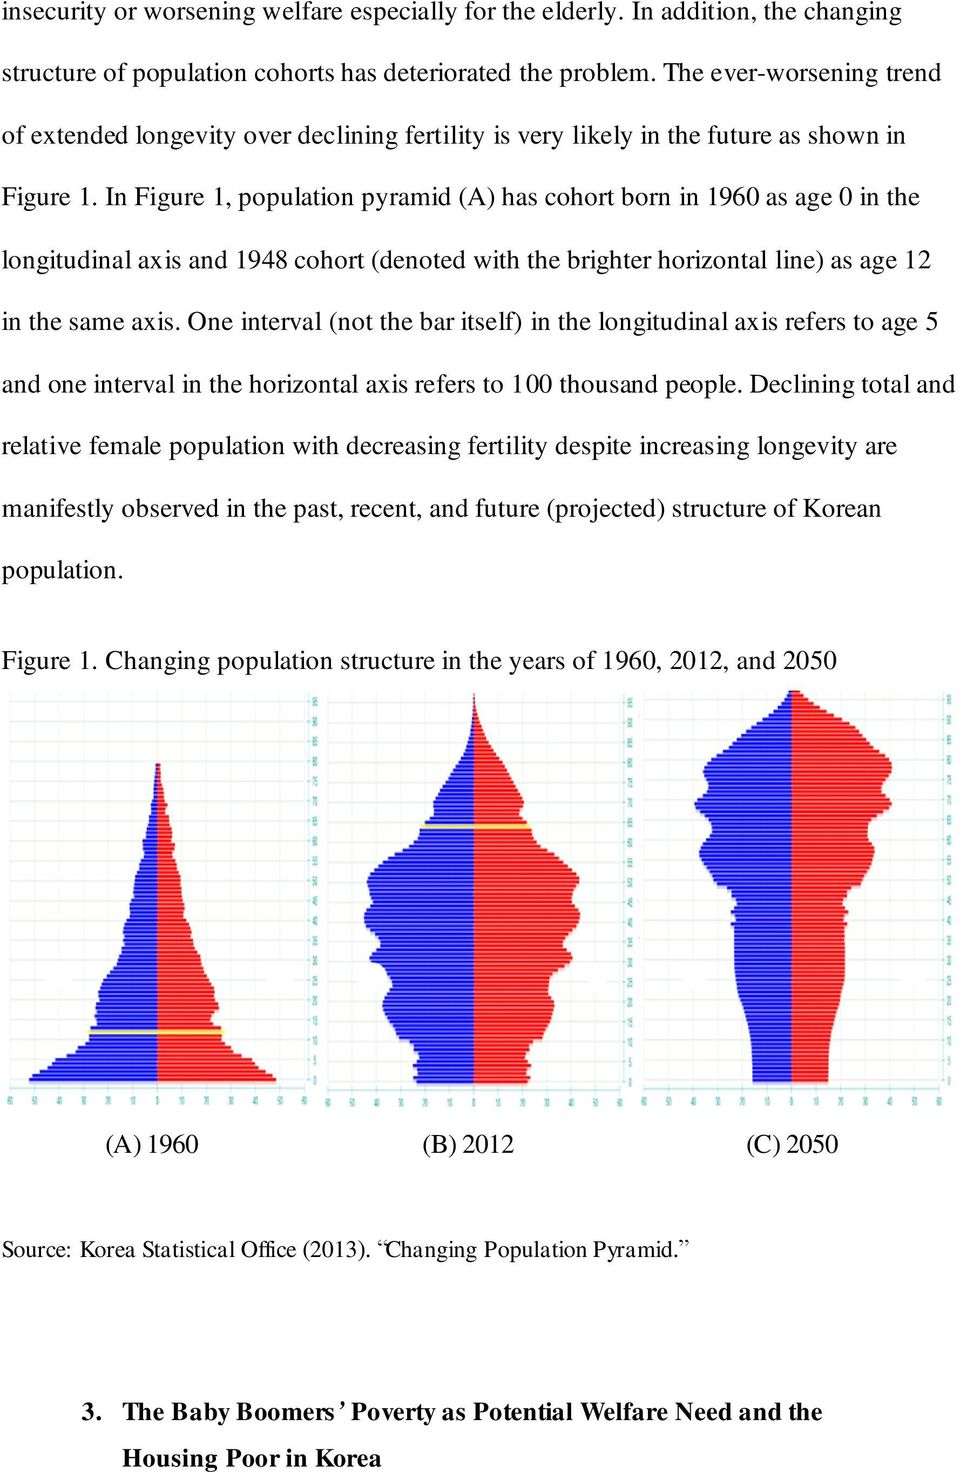 In Figure 1, population pyramid (A) has cohort born in 1960 as age 0 in the longitudinal axis and 1948 cohort (denoted with the brighter horizontal line) as age 12 in the same axis.